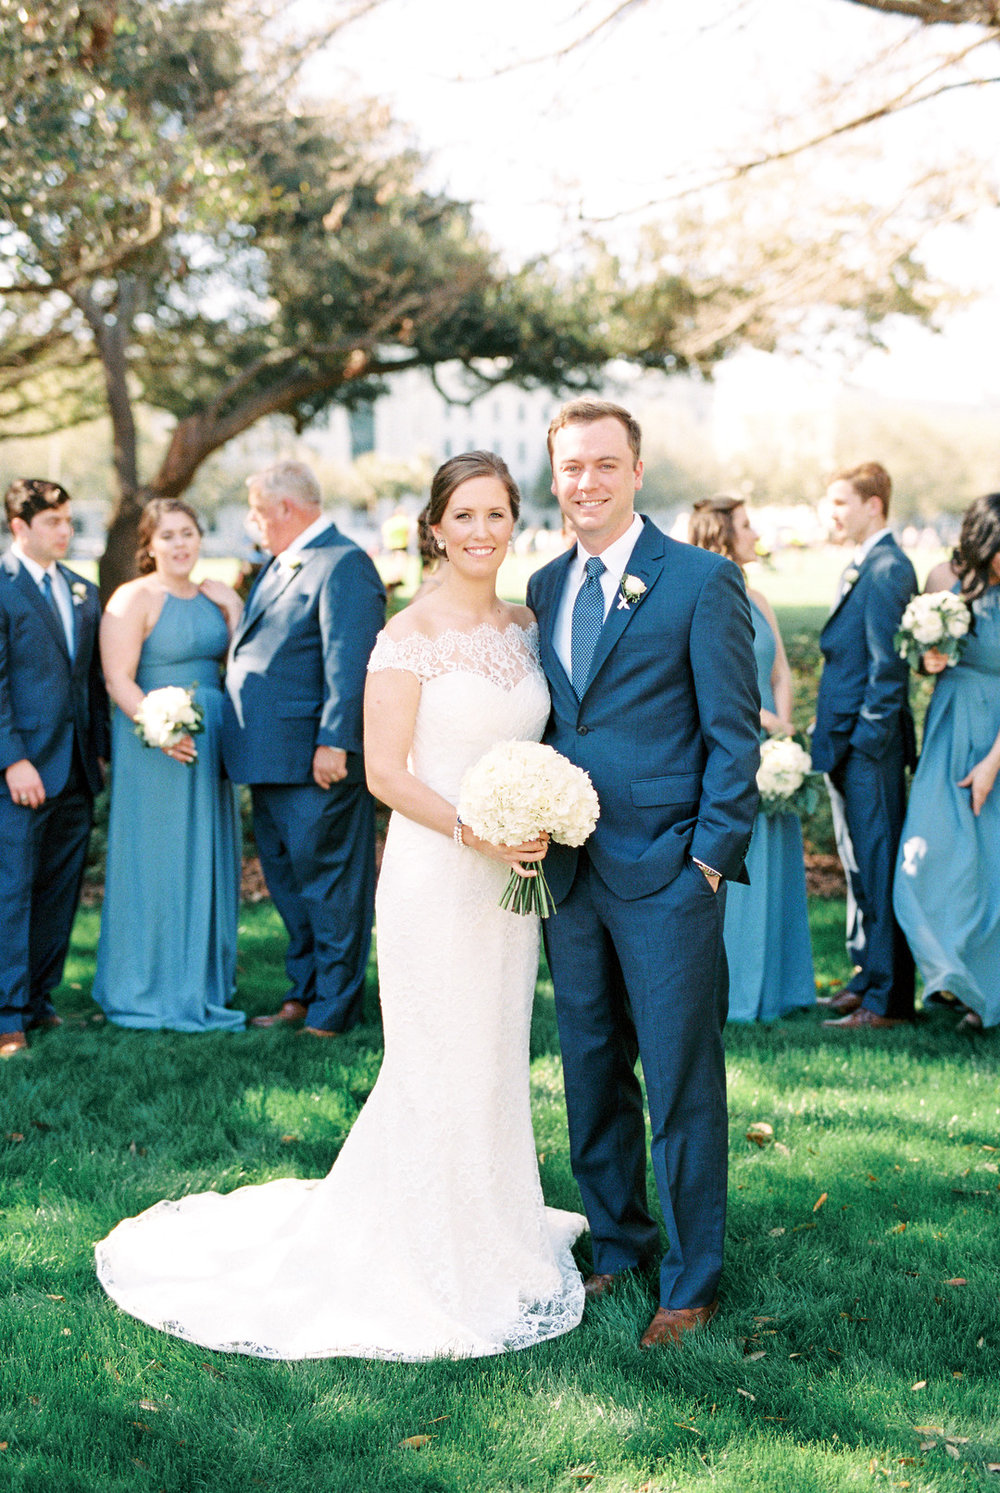 Forsberg_Inabnett_CatherineAnnPhotography_catherineannphotographywedding22418natalielegrandfilm31_big.jpg